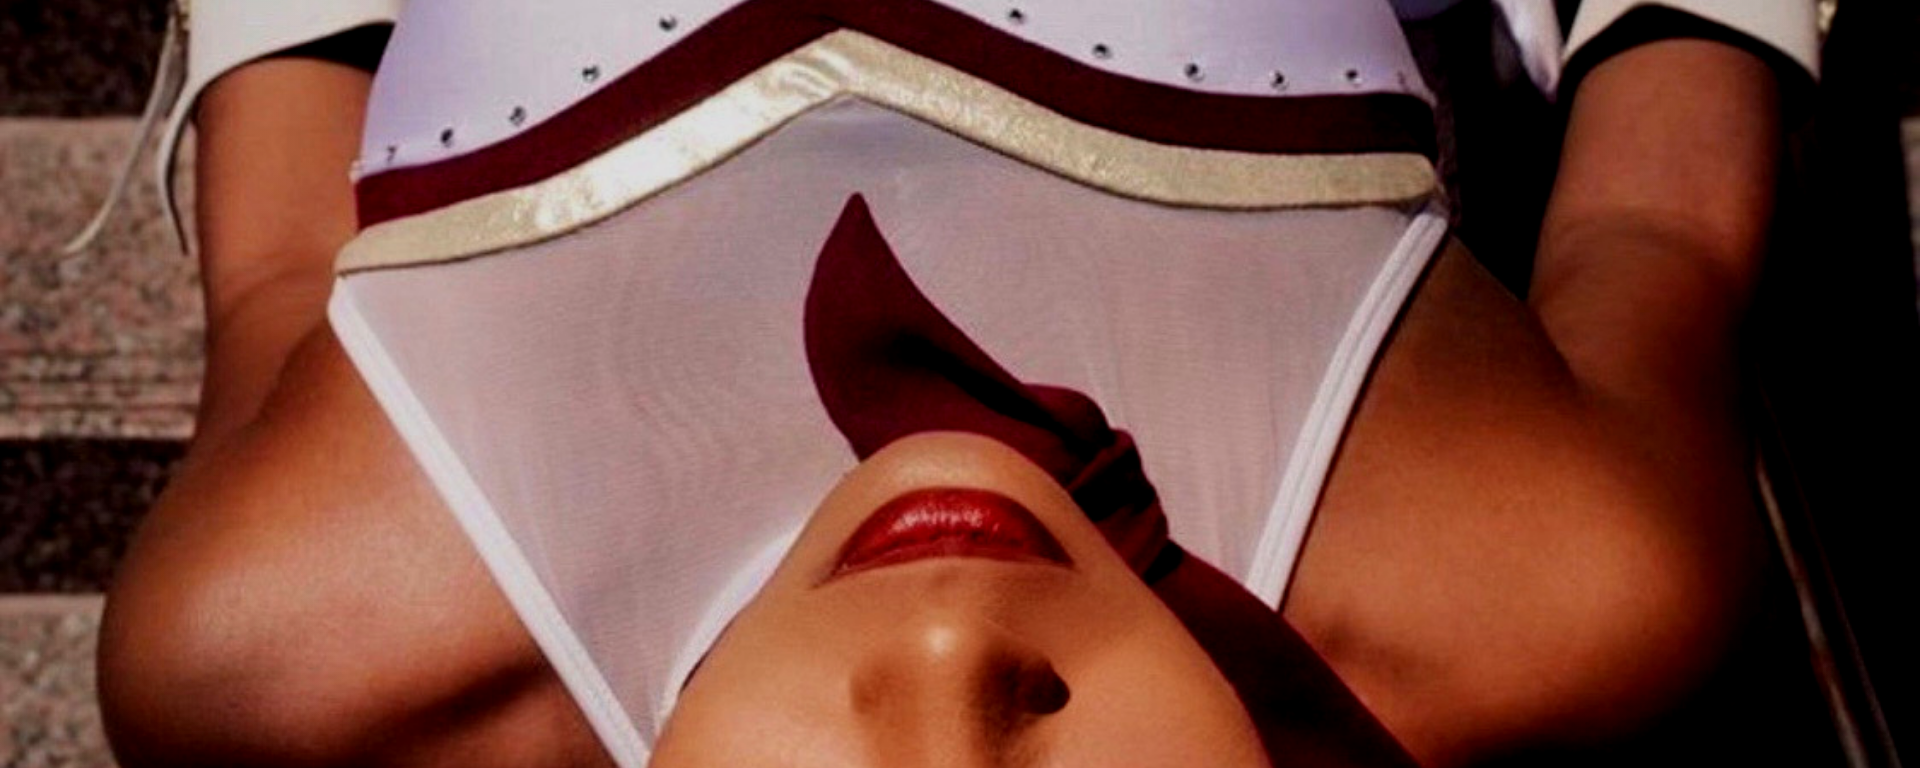 An image taken of Ravyn Ammons laying down from above. She is wearing a white Strutters uniform with a hat covering one of her eyes.